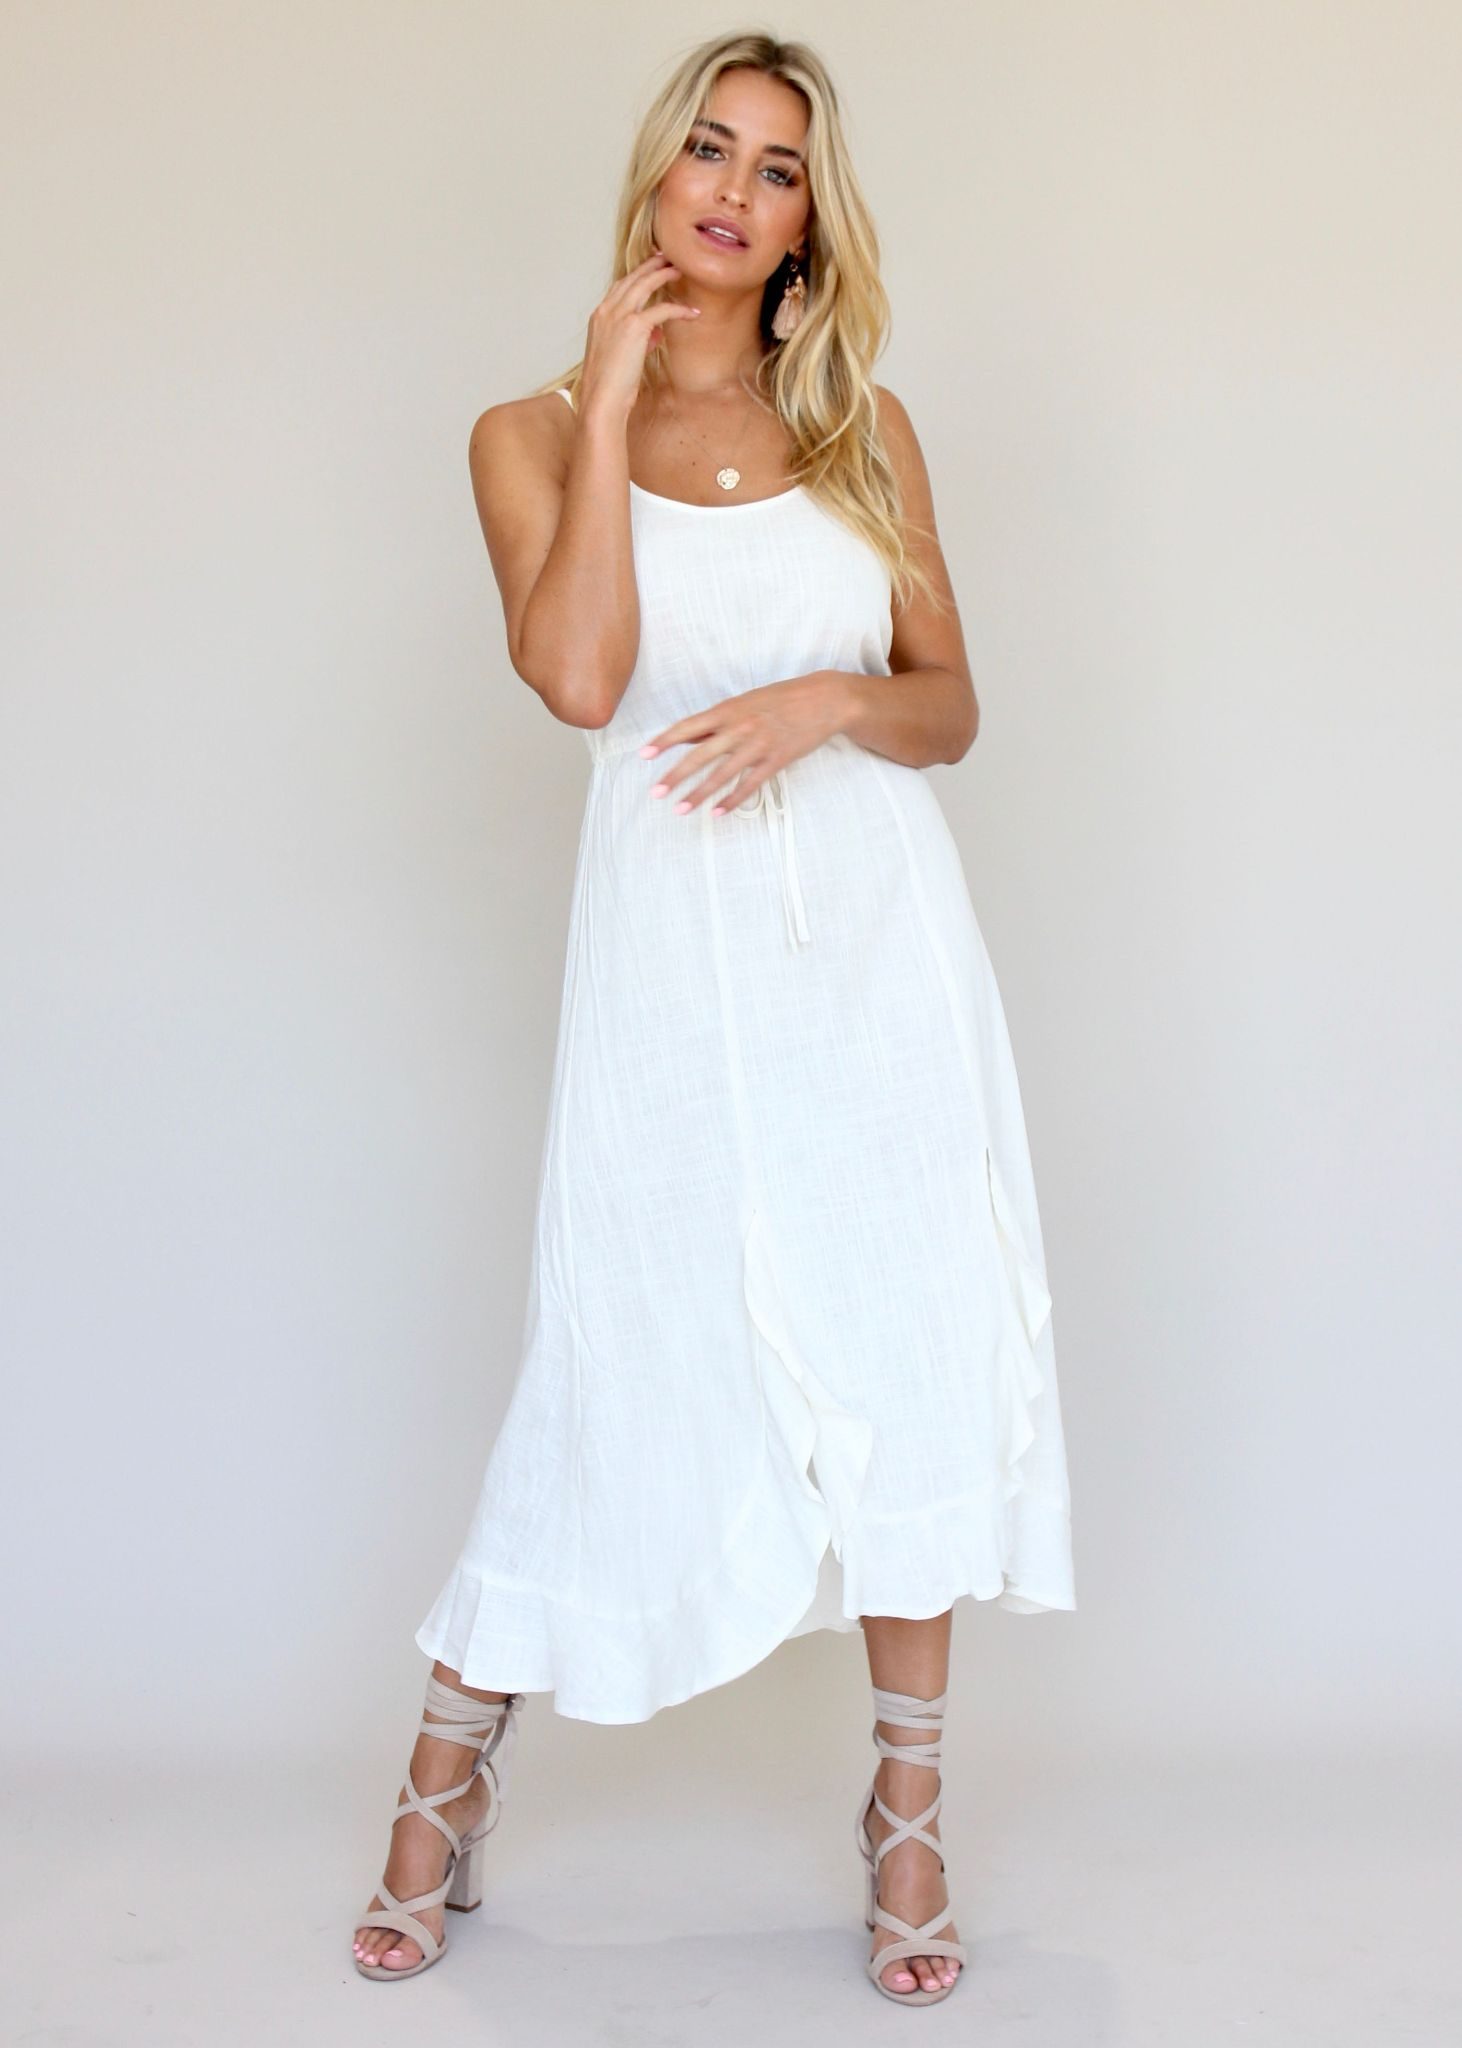 Dreamy Ways Dress - White